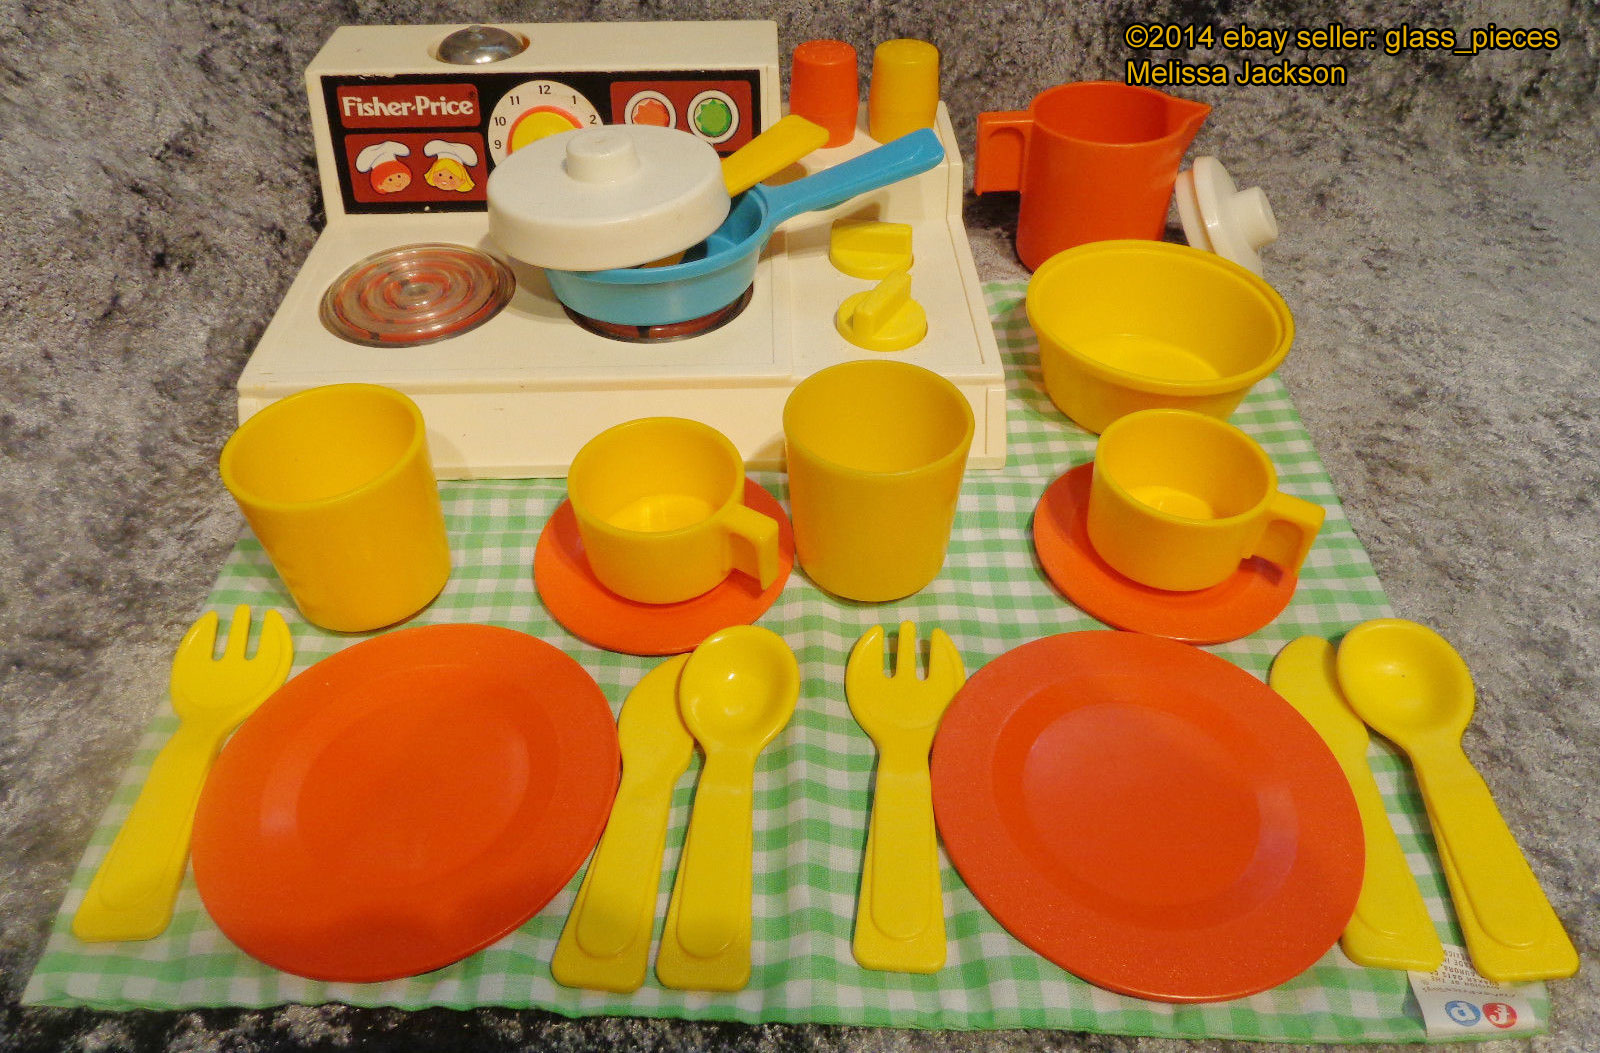 Fisher Price Toy Food : This old toy s fisher price fun with food quot lids